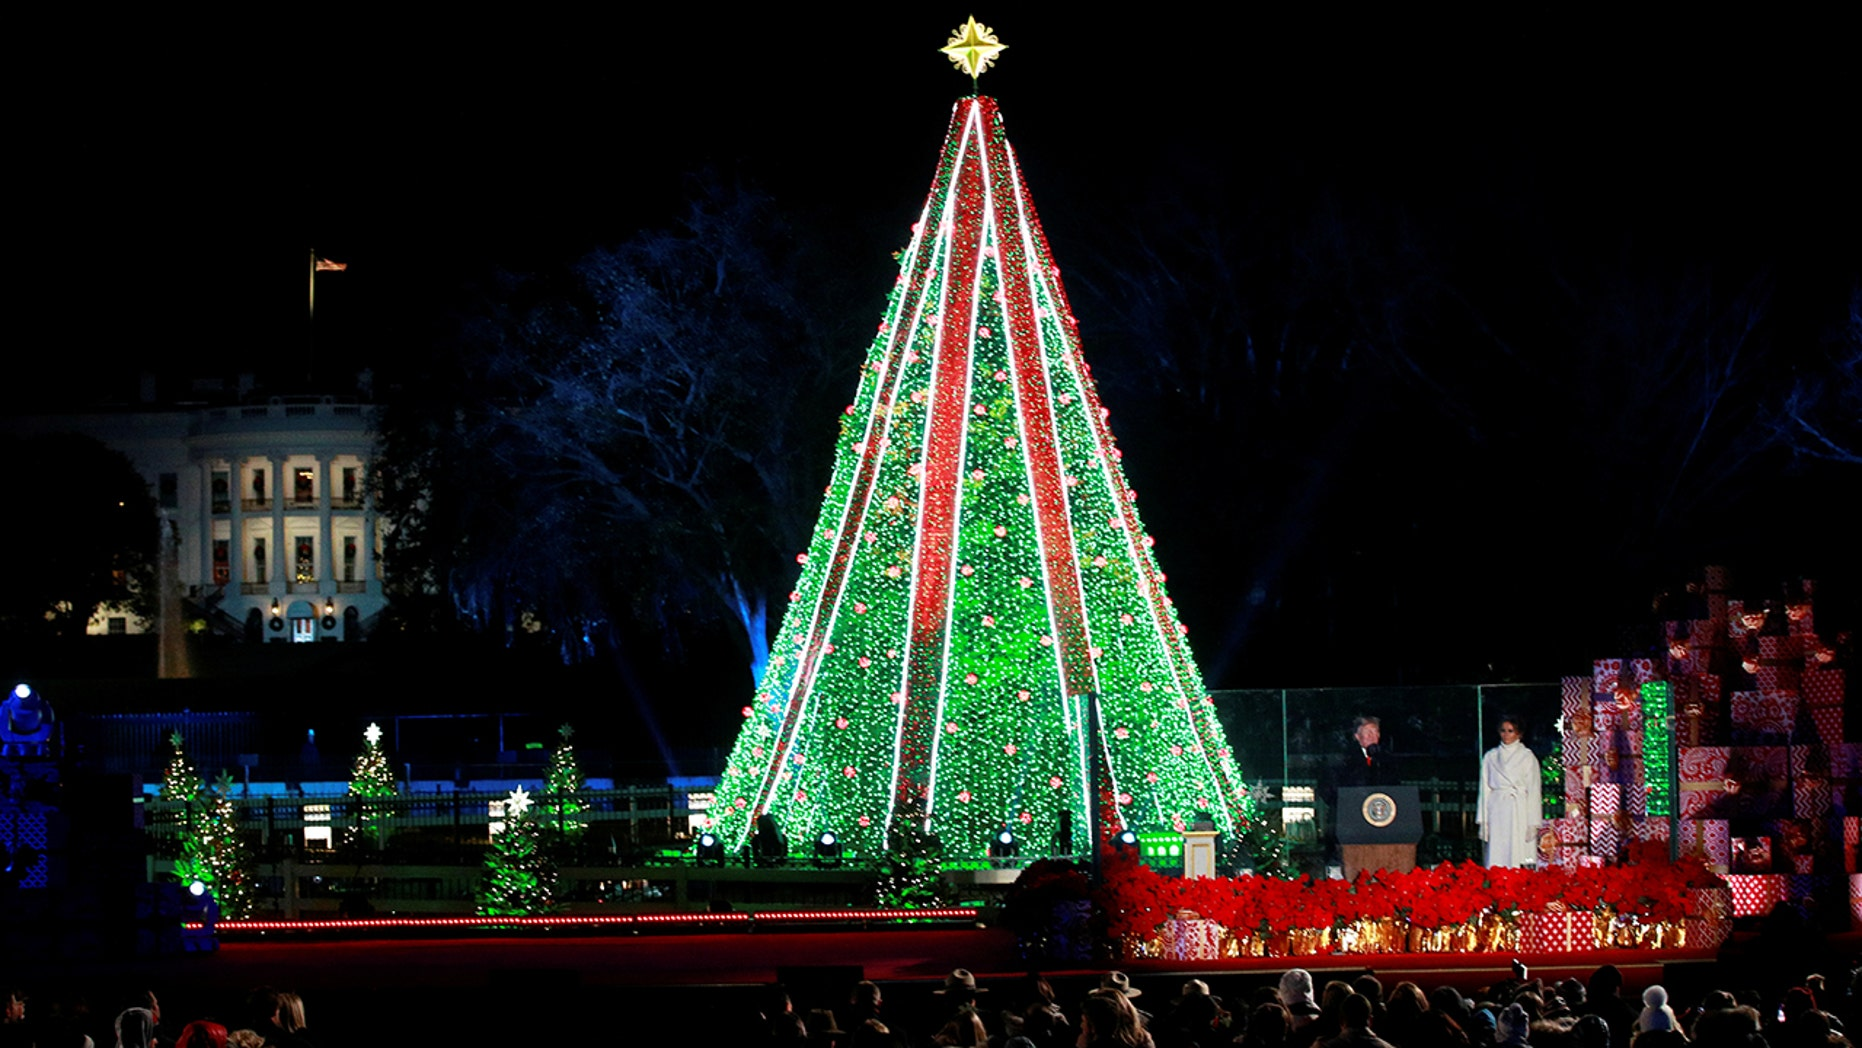 Man in 'emotional distress' climbs National Christmas Tree, police say